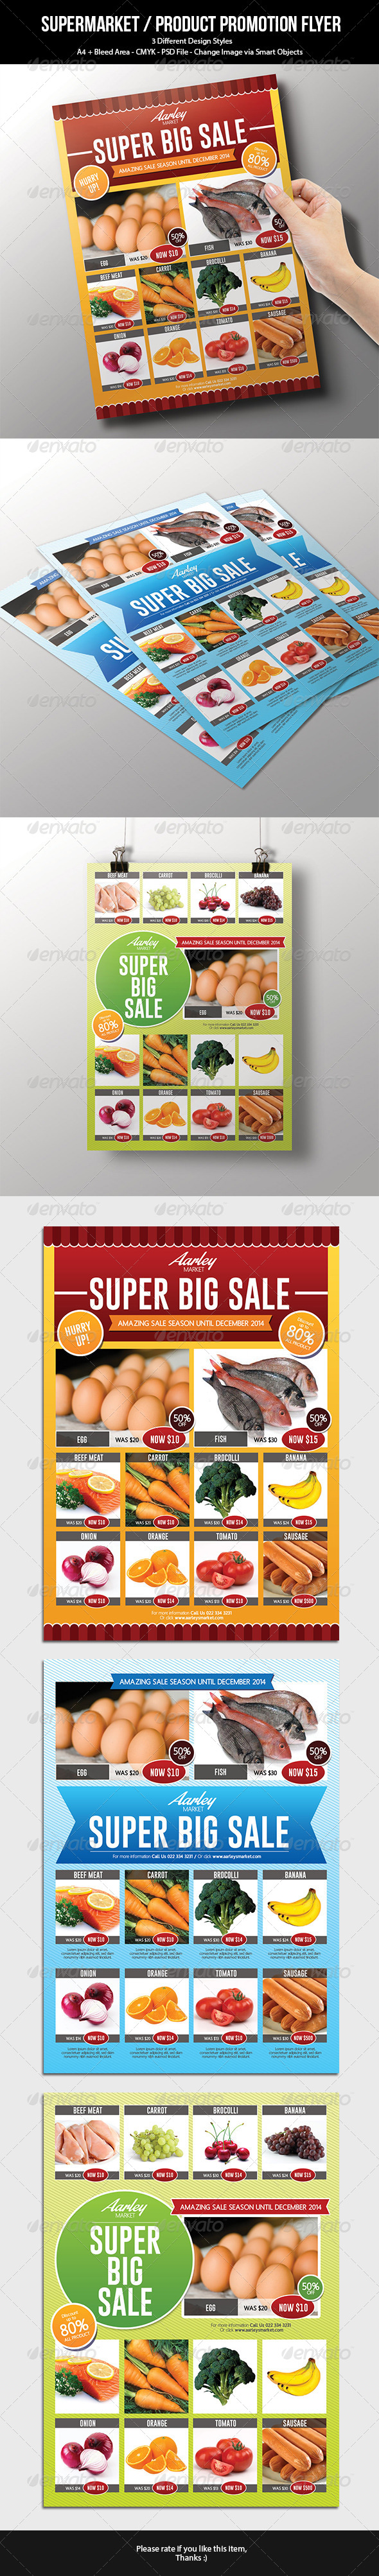 GraphicRiver Supermarket Product Promotion Flyer 7245418